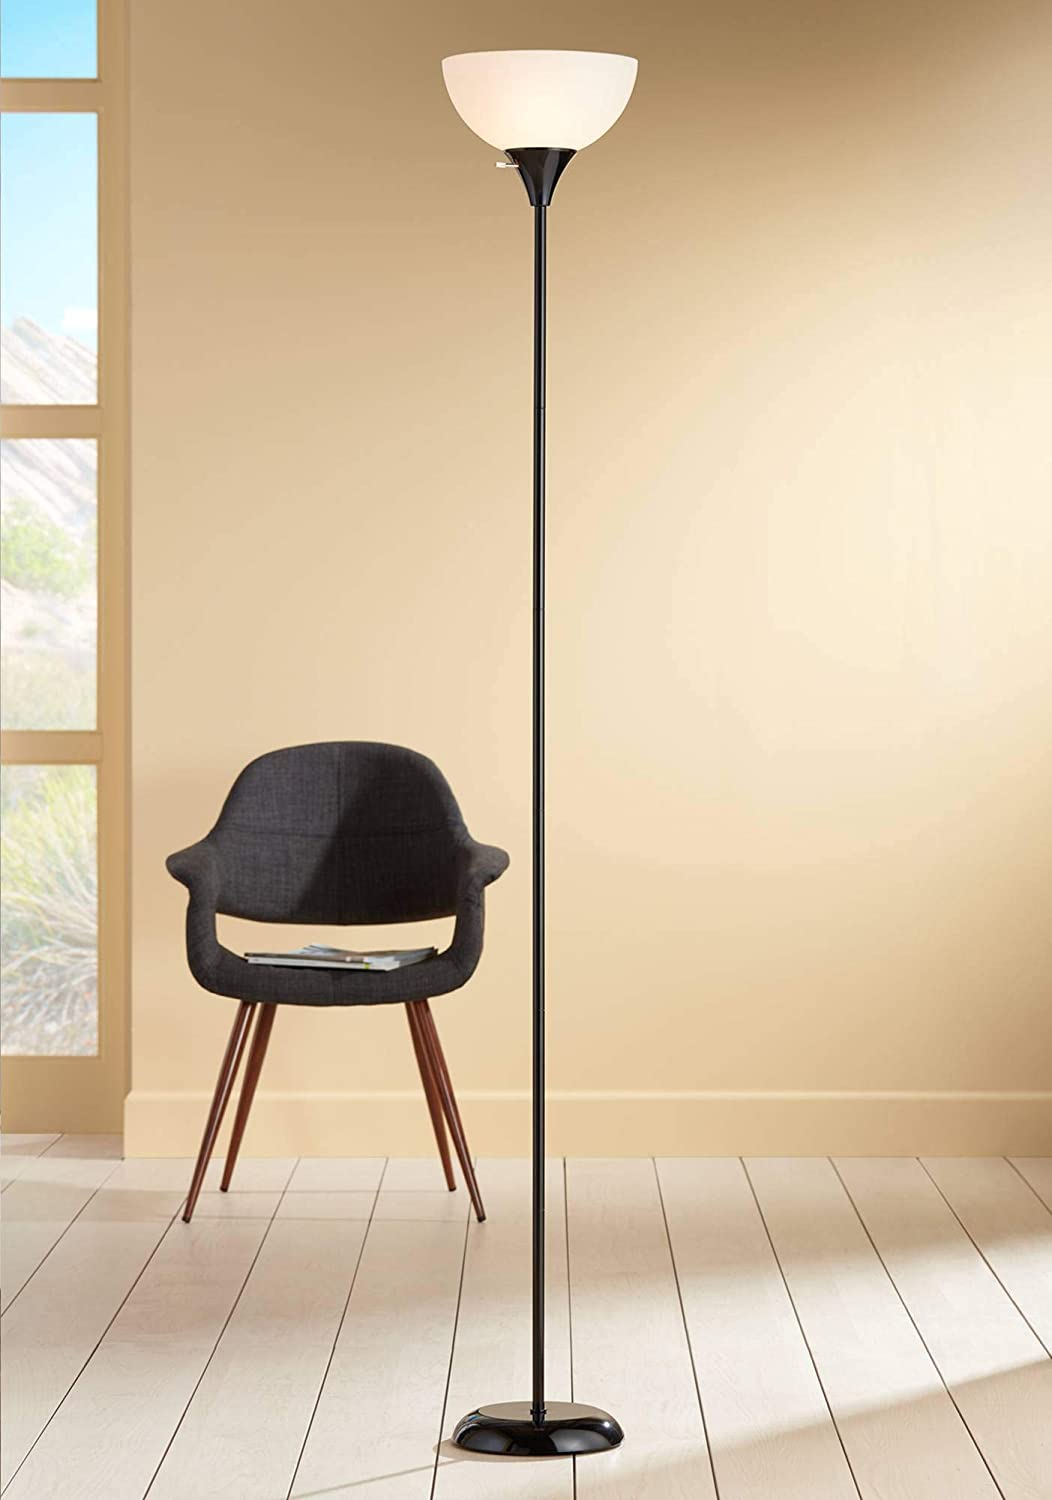 Bailey Modern Torchiere Floor Lamp Tall Black Thin Profile White Shade for Living Room Bedroom Office Uplight – 360 Lighting